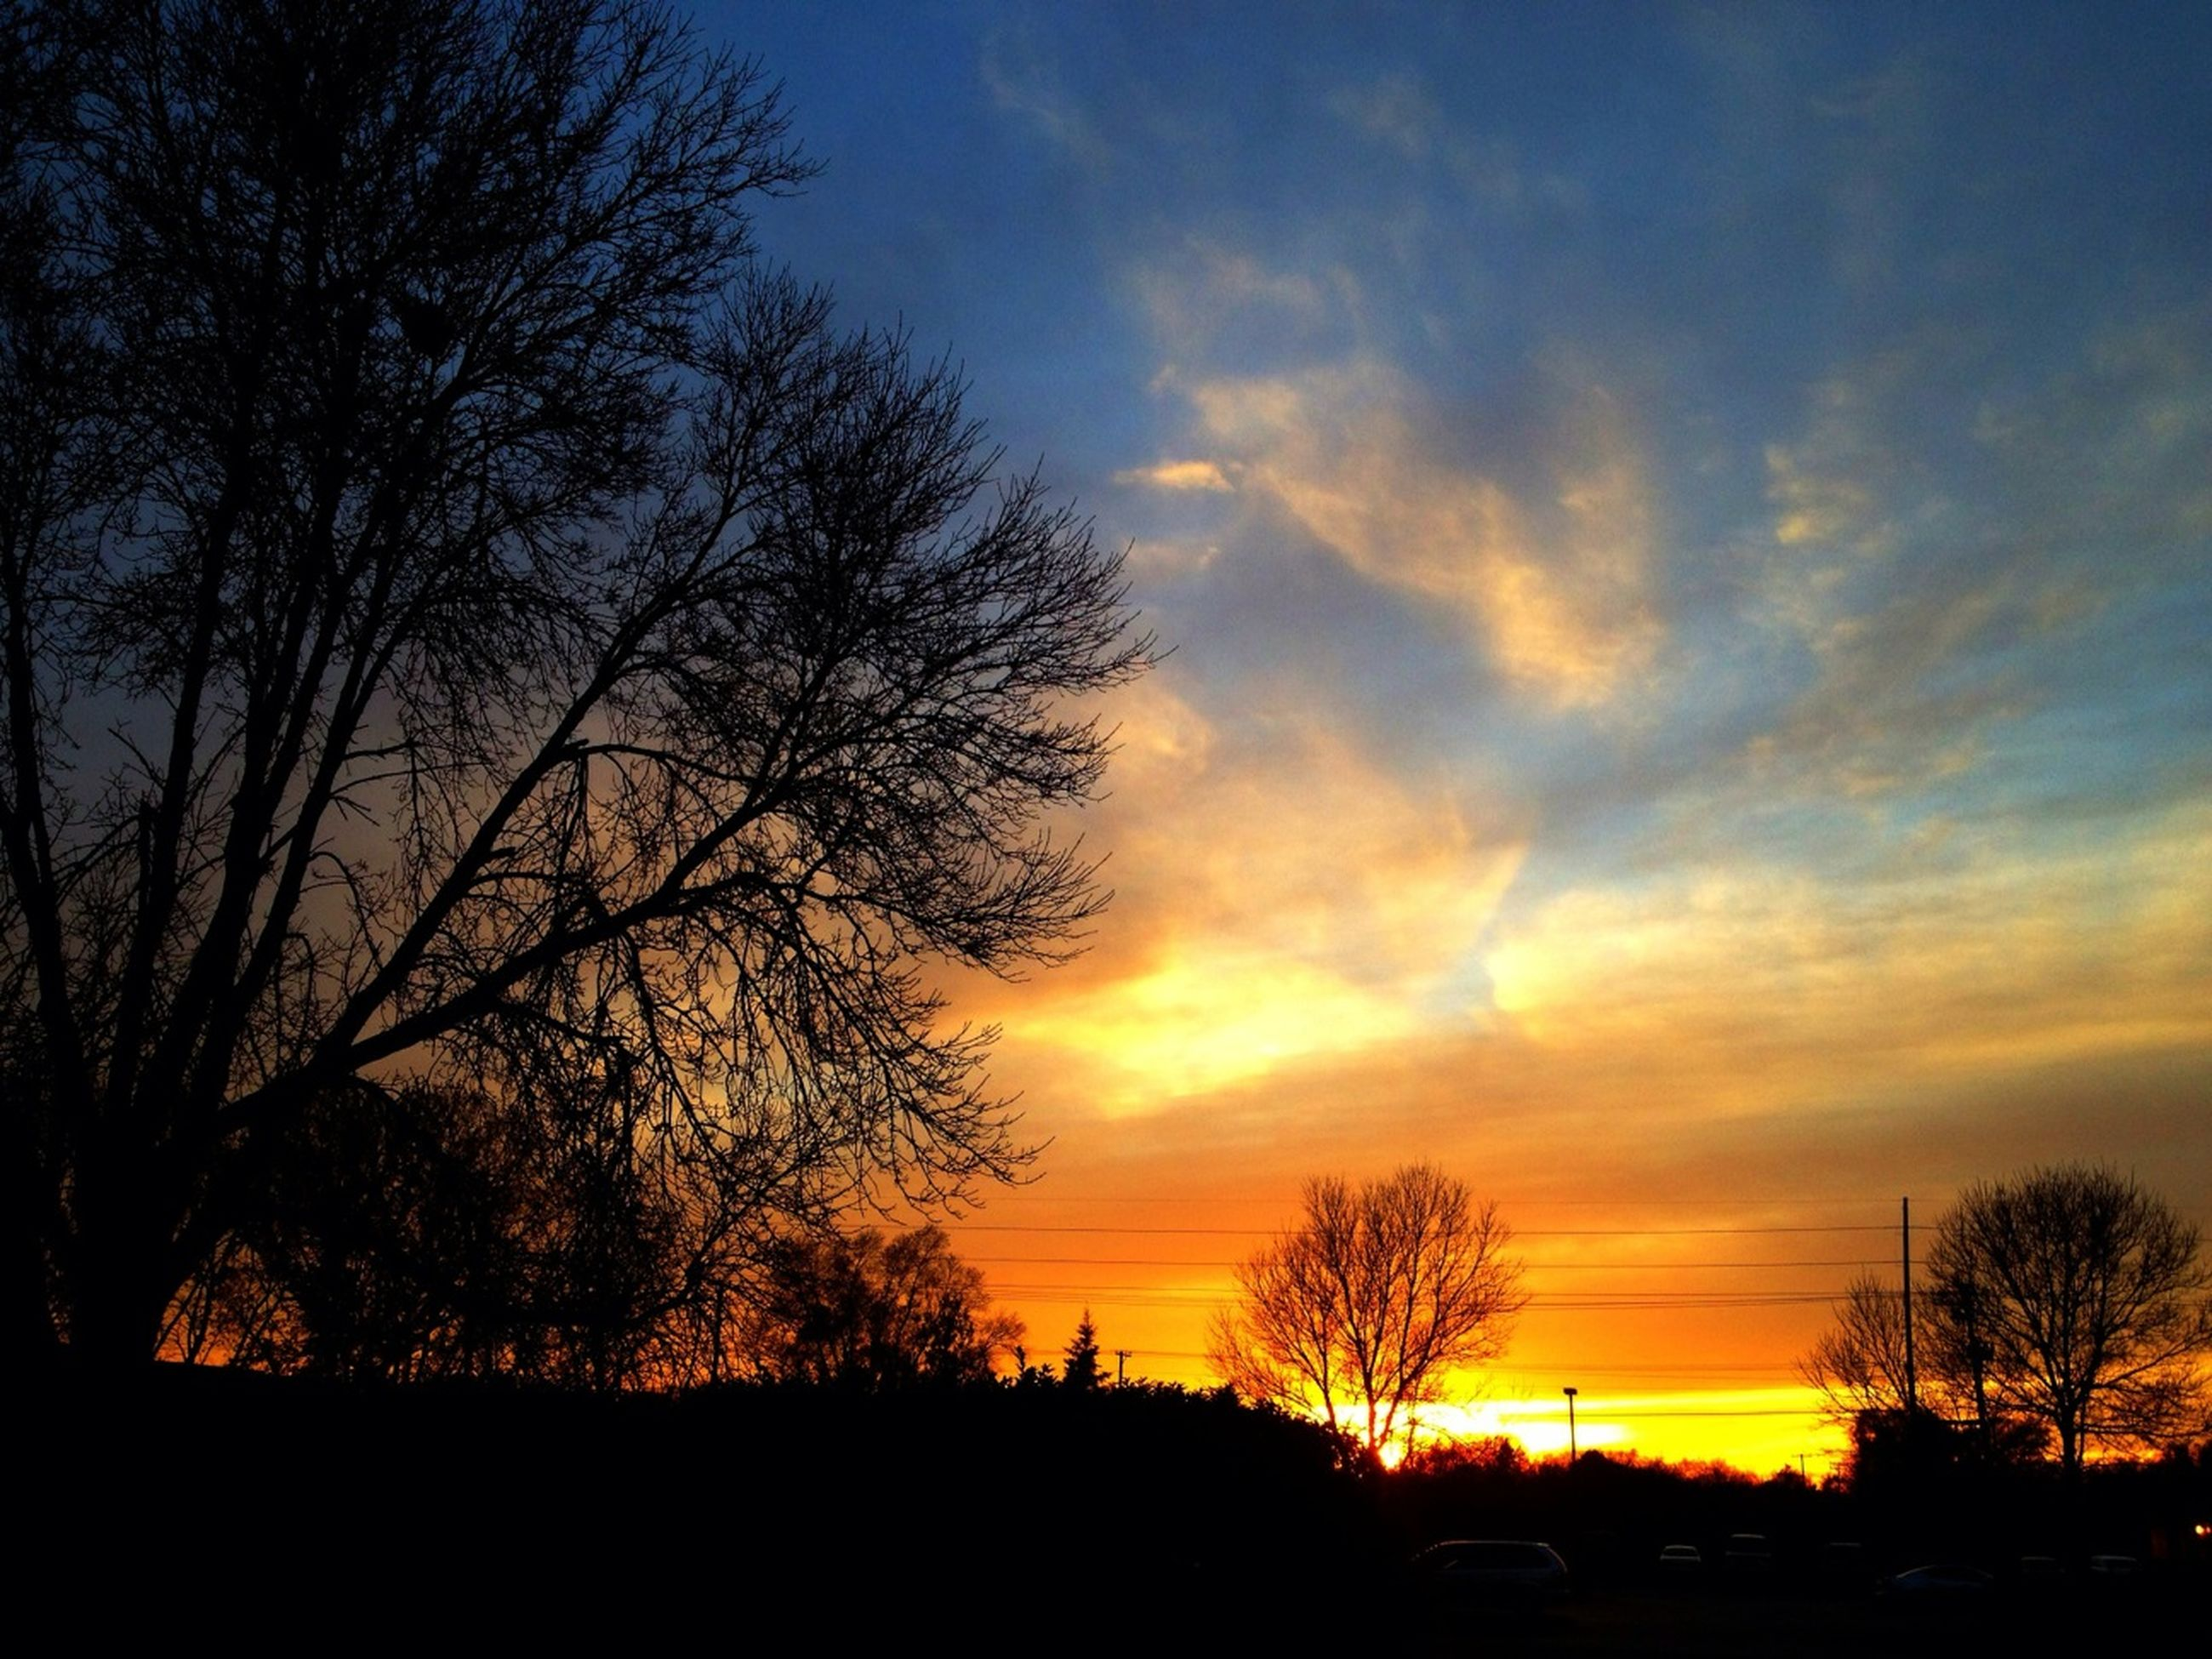 sunset, silhouette, tree, sky, tranquility, beauty in nature, scenics, tranquil scene, orange color, bare tree, nature, cloud - sky, idyllic, landscape, branch, dramatic sky, cloud, moody sky, outdoors, no people